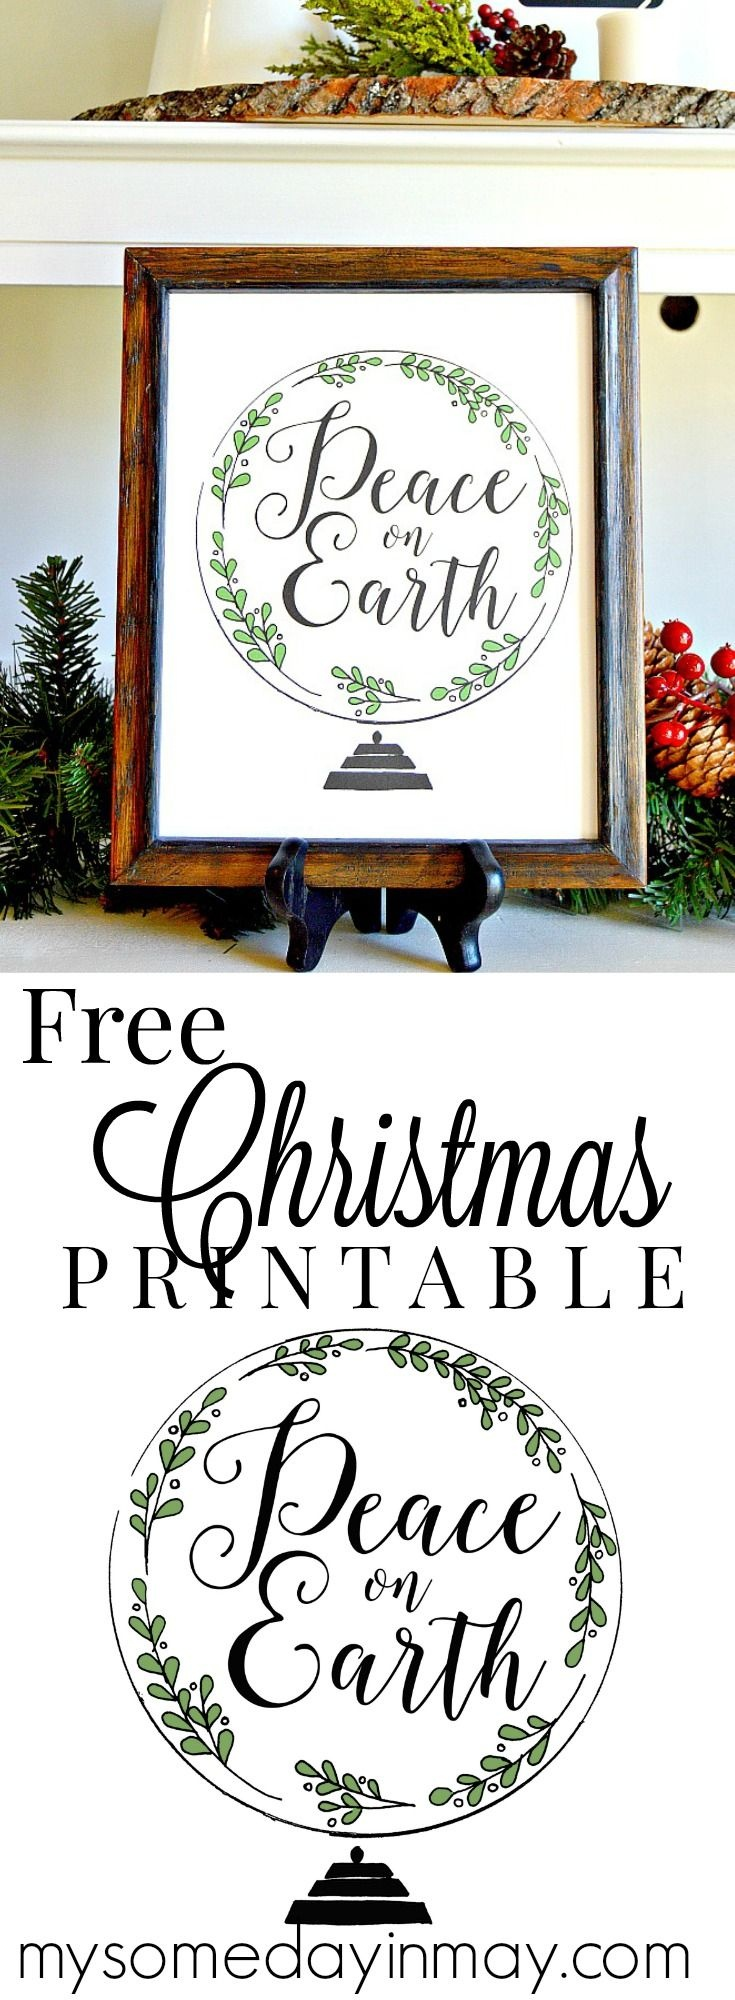 Peace On Earth Free Printable | Share Your Craft | Free Christmas - Free Printable Christmas Party Signs